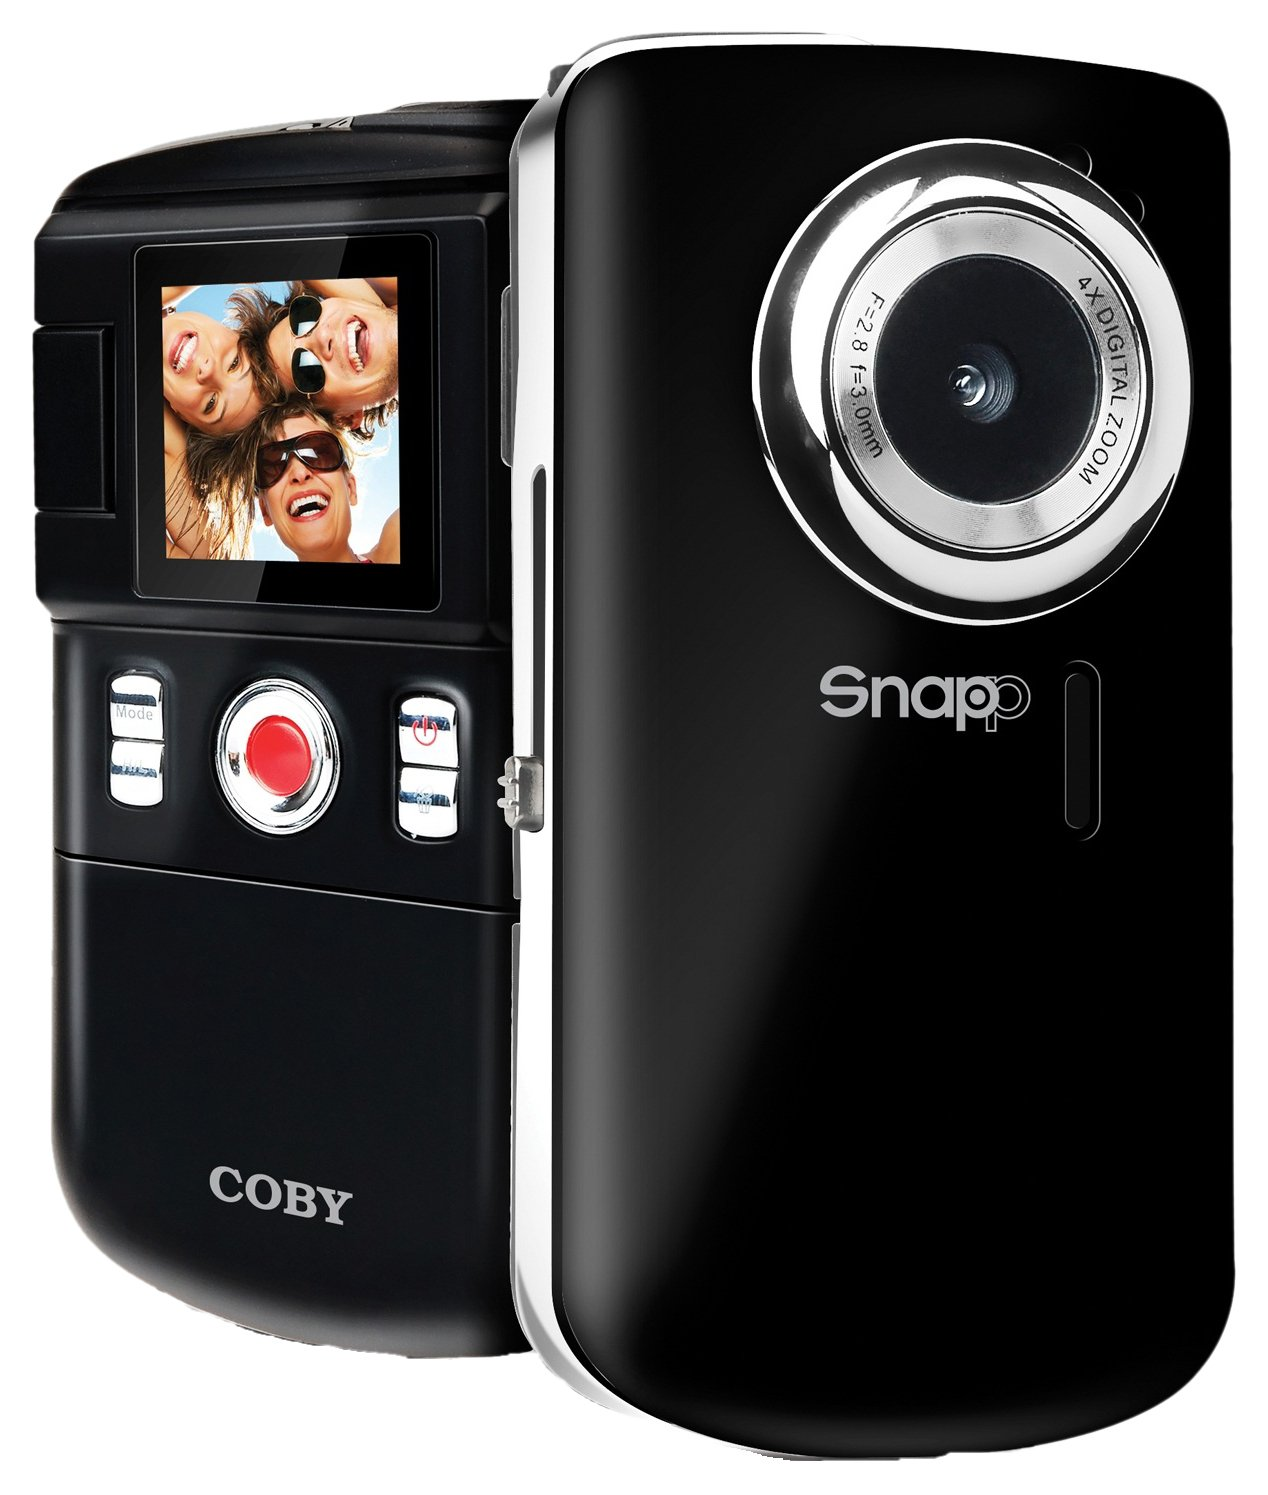 Coby 1.44-Inch TFT LCD SNAPP Mini Camcorder/Camera CAM3001 (Black)